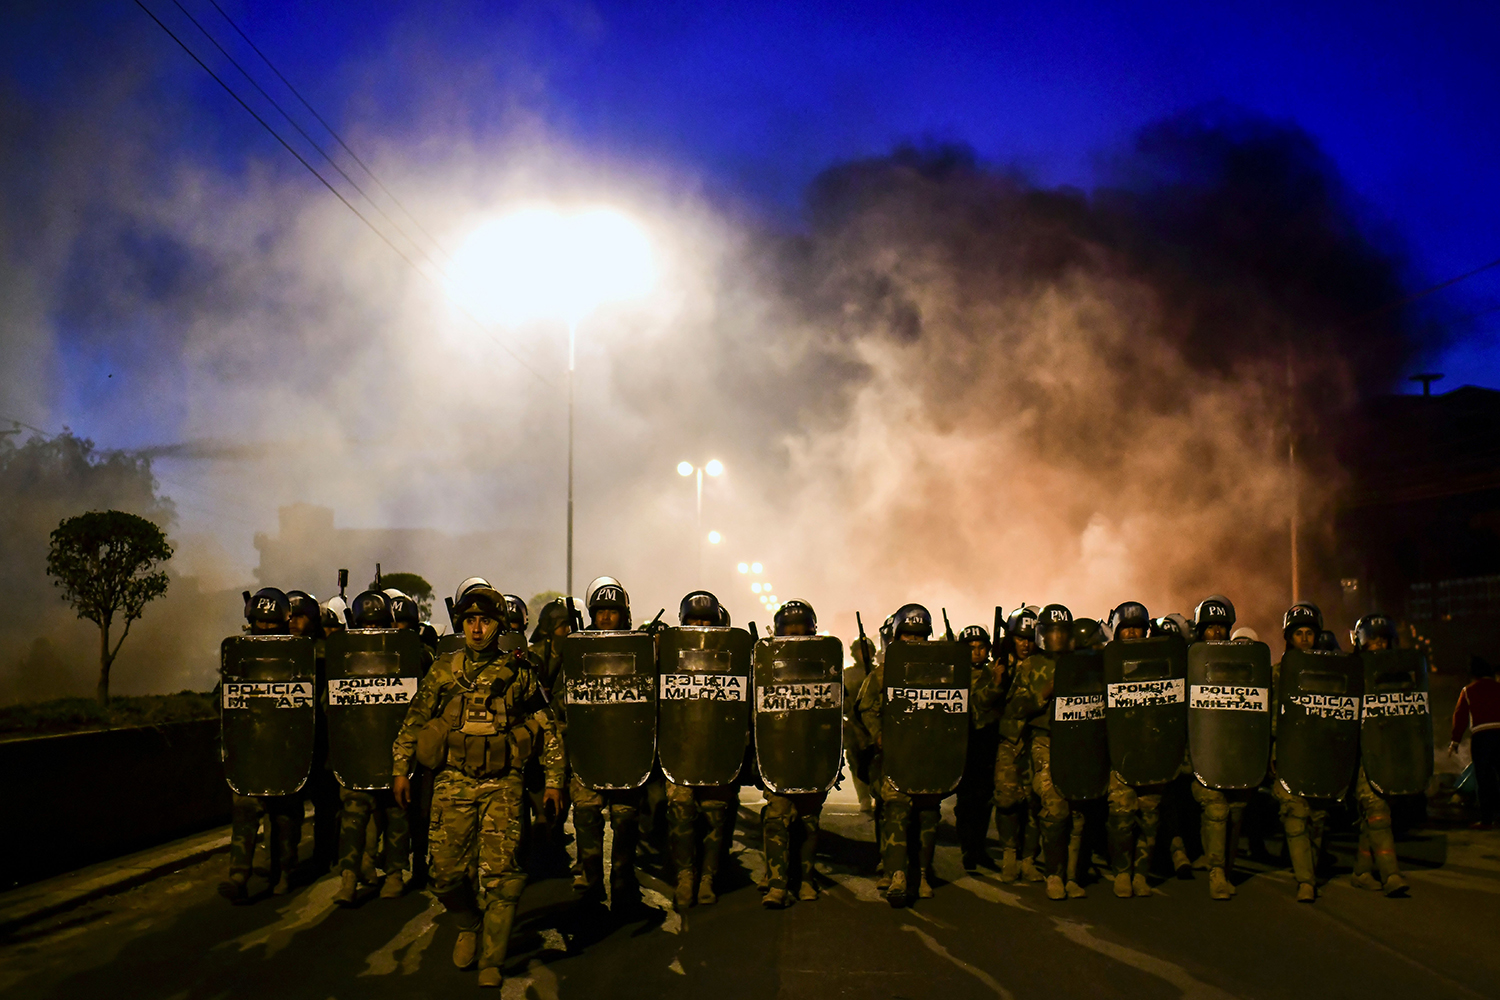 Bolivian militarized police take position as supporters Morales block a road outside Cochabamba on Nov. 18. RONALDO SCHEMIDT/AFP via Getty Images